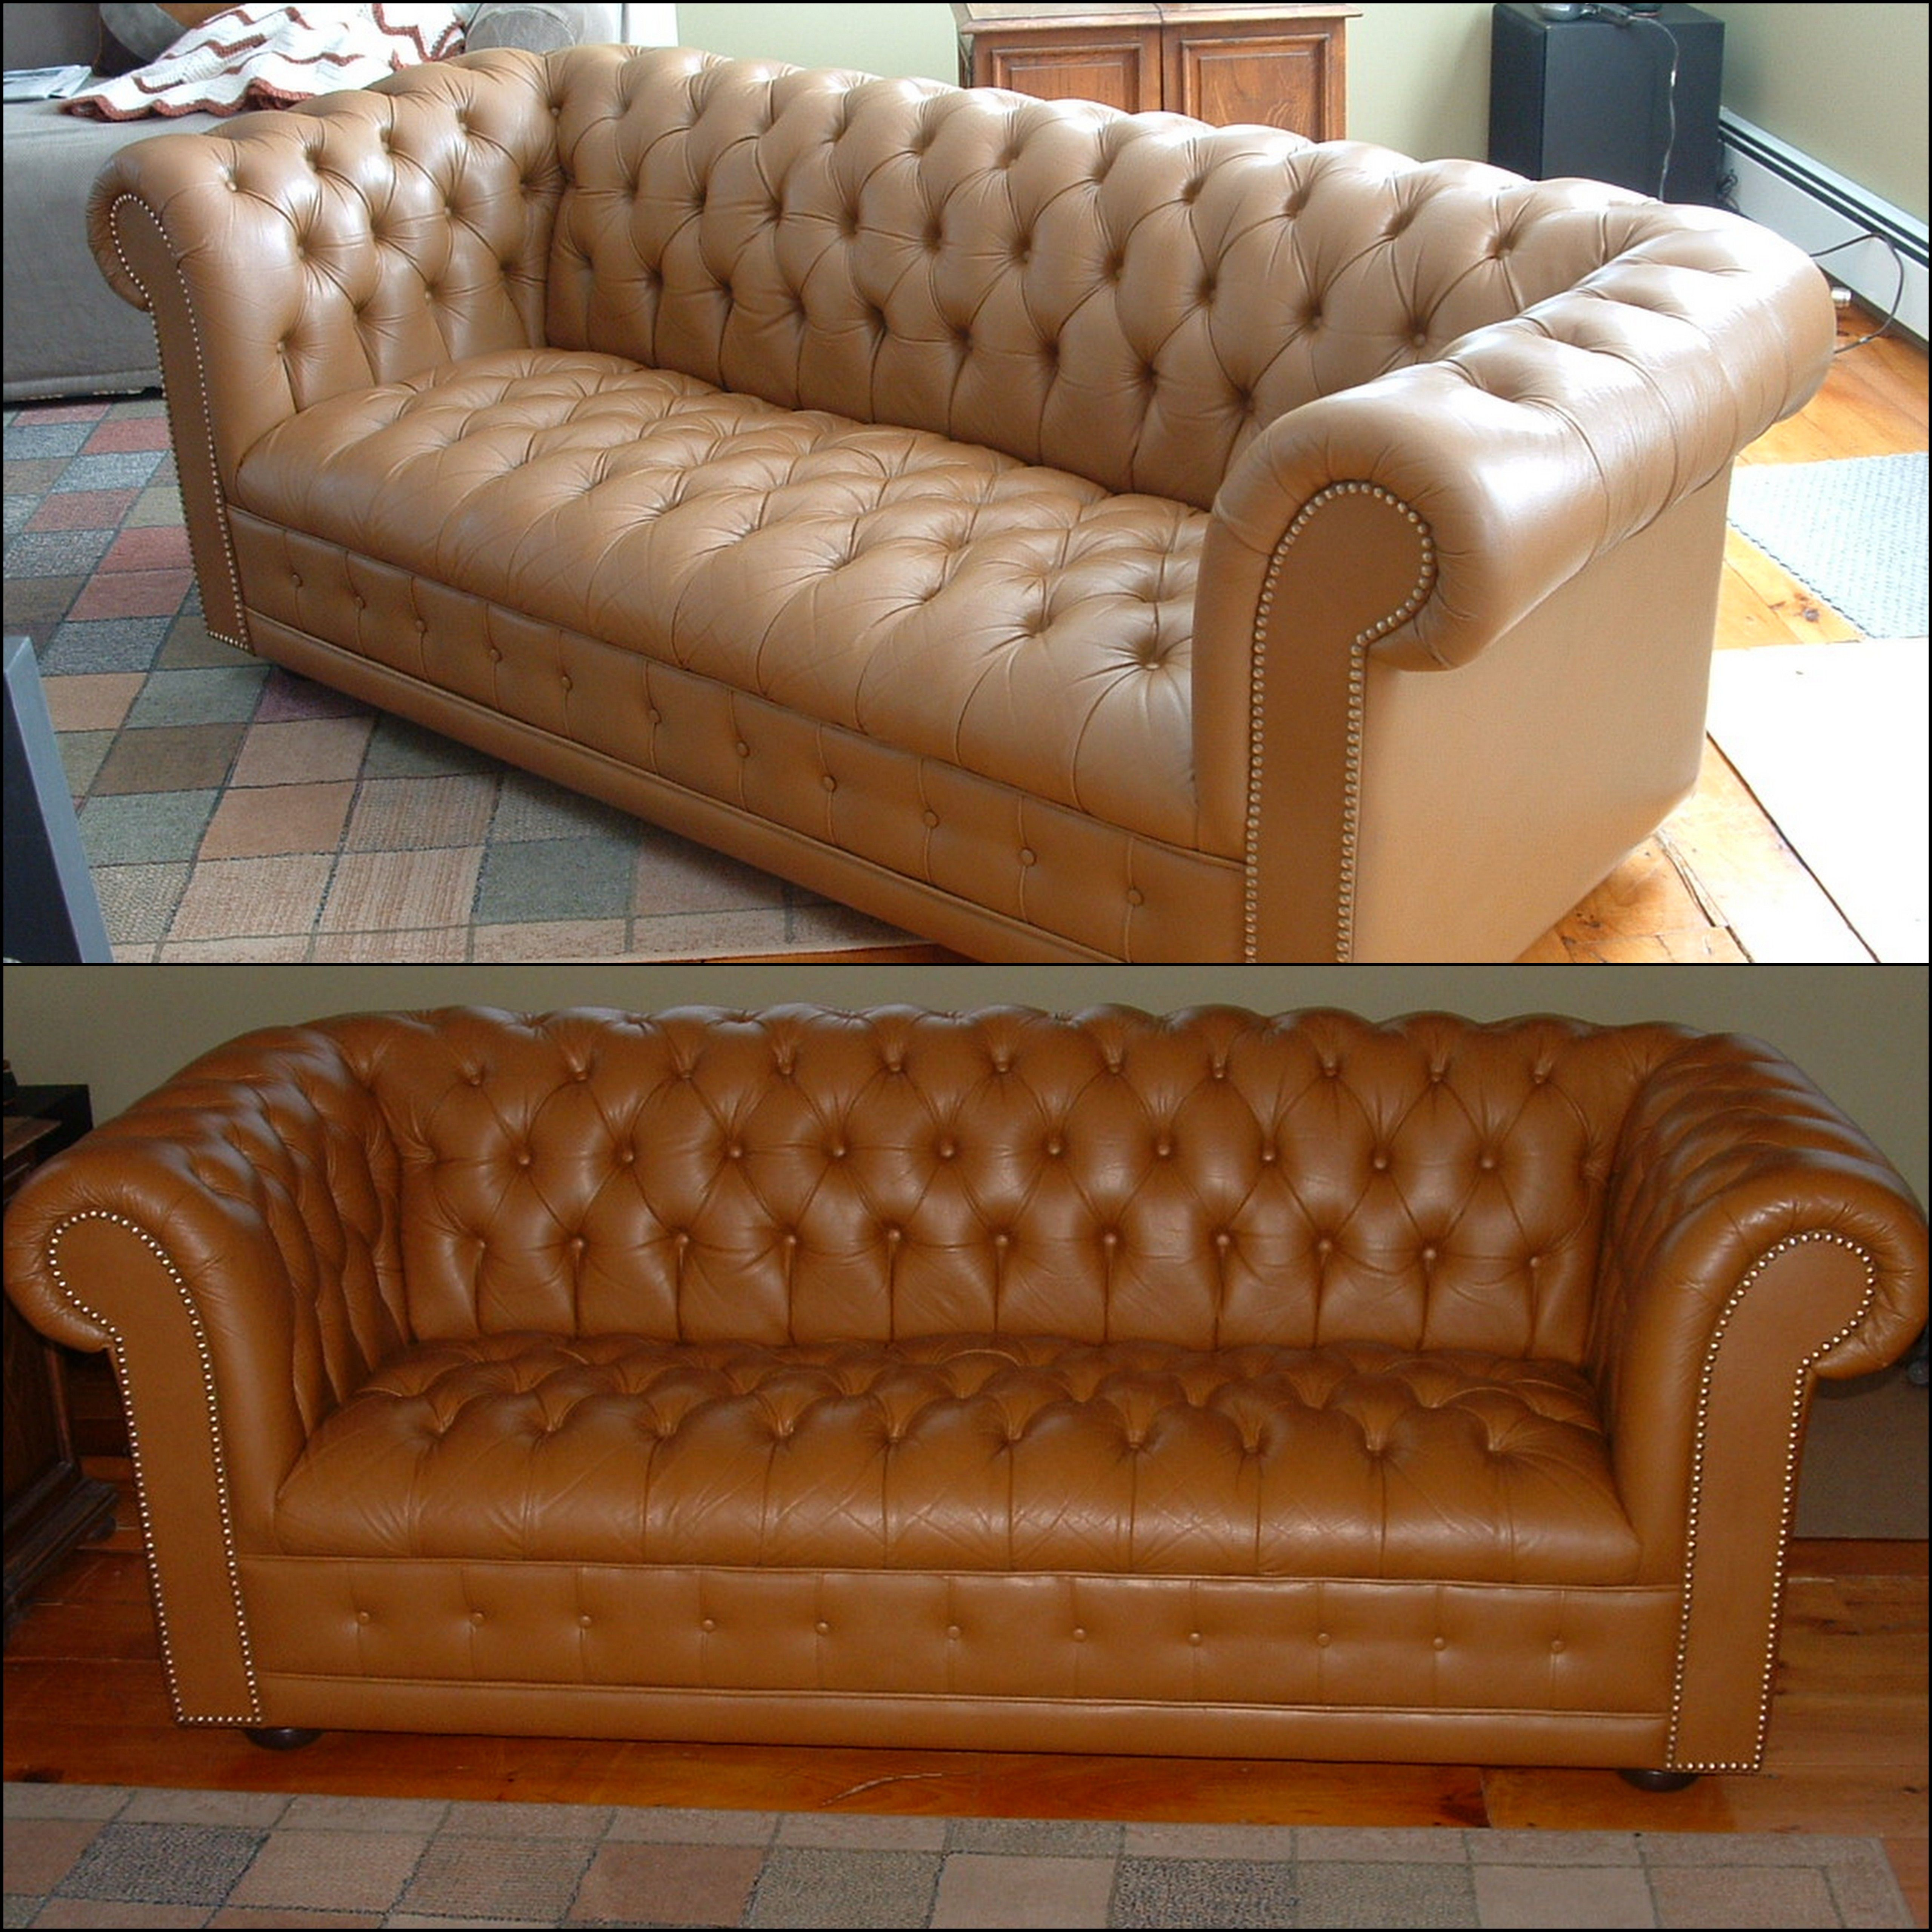 Rub N Restore Reviews Before After Photos From Real Customers Tufted Leather Couch Best Leather Sofa Tan Leather Couch